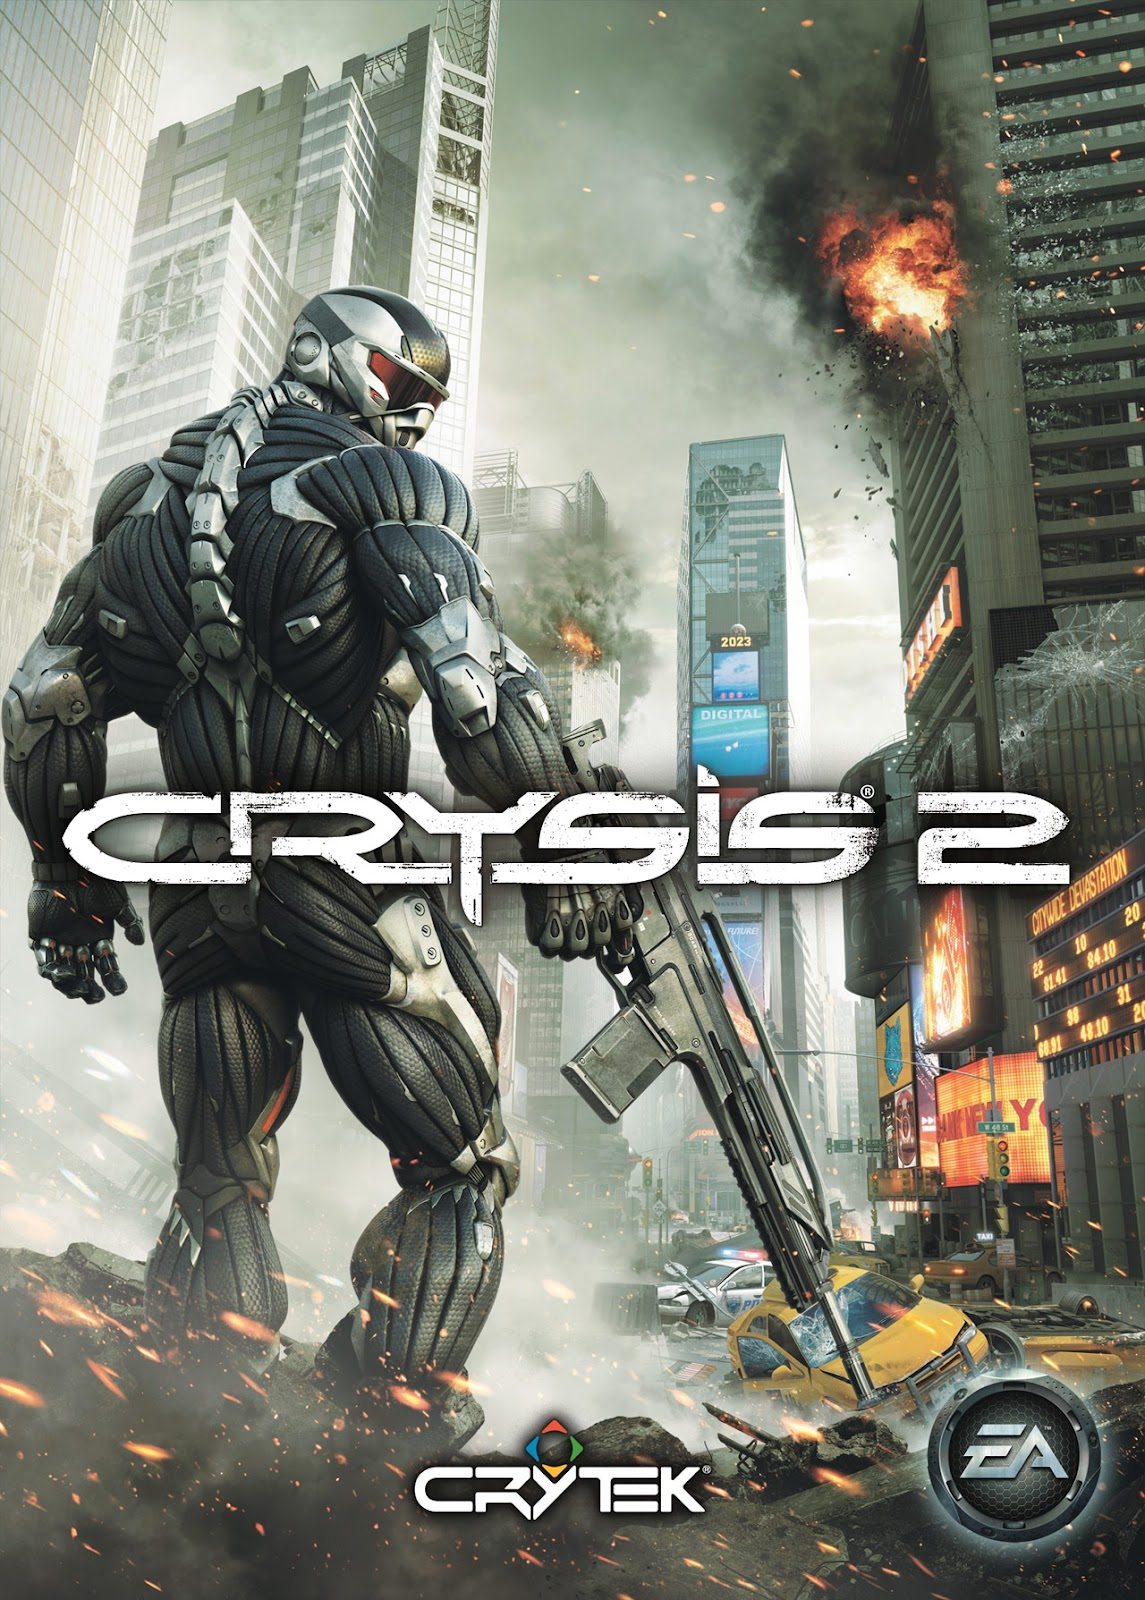 Crysis+2+%25282011%2529+cover+xlg